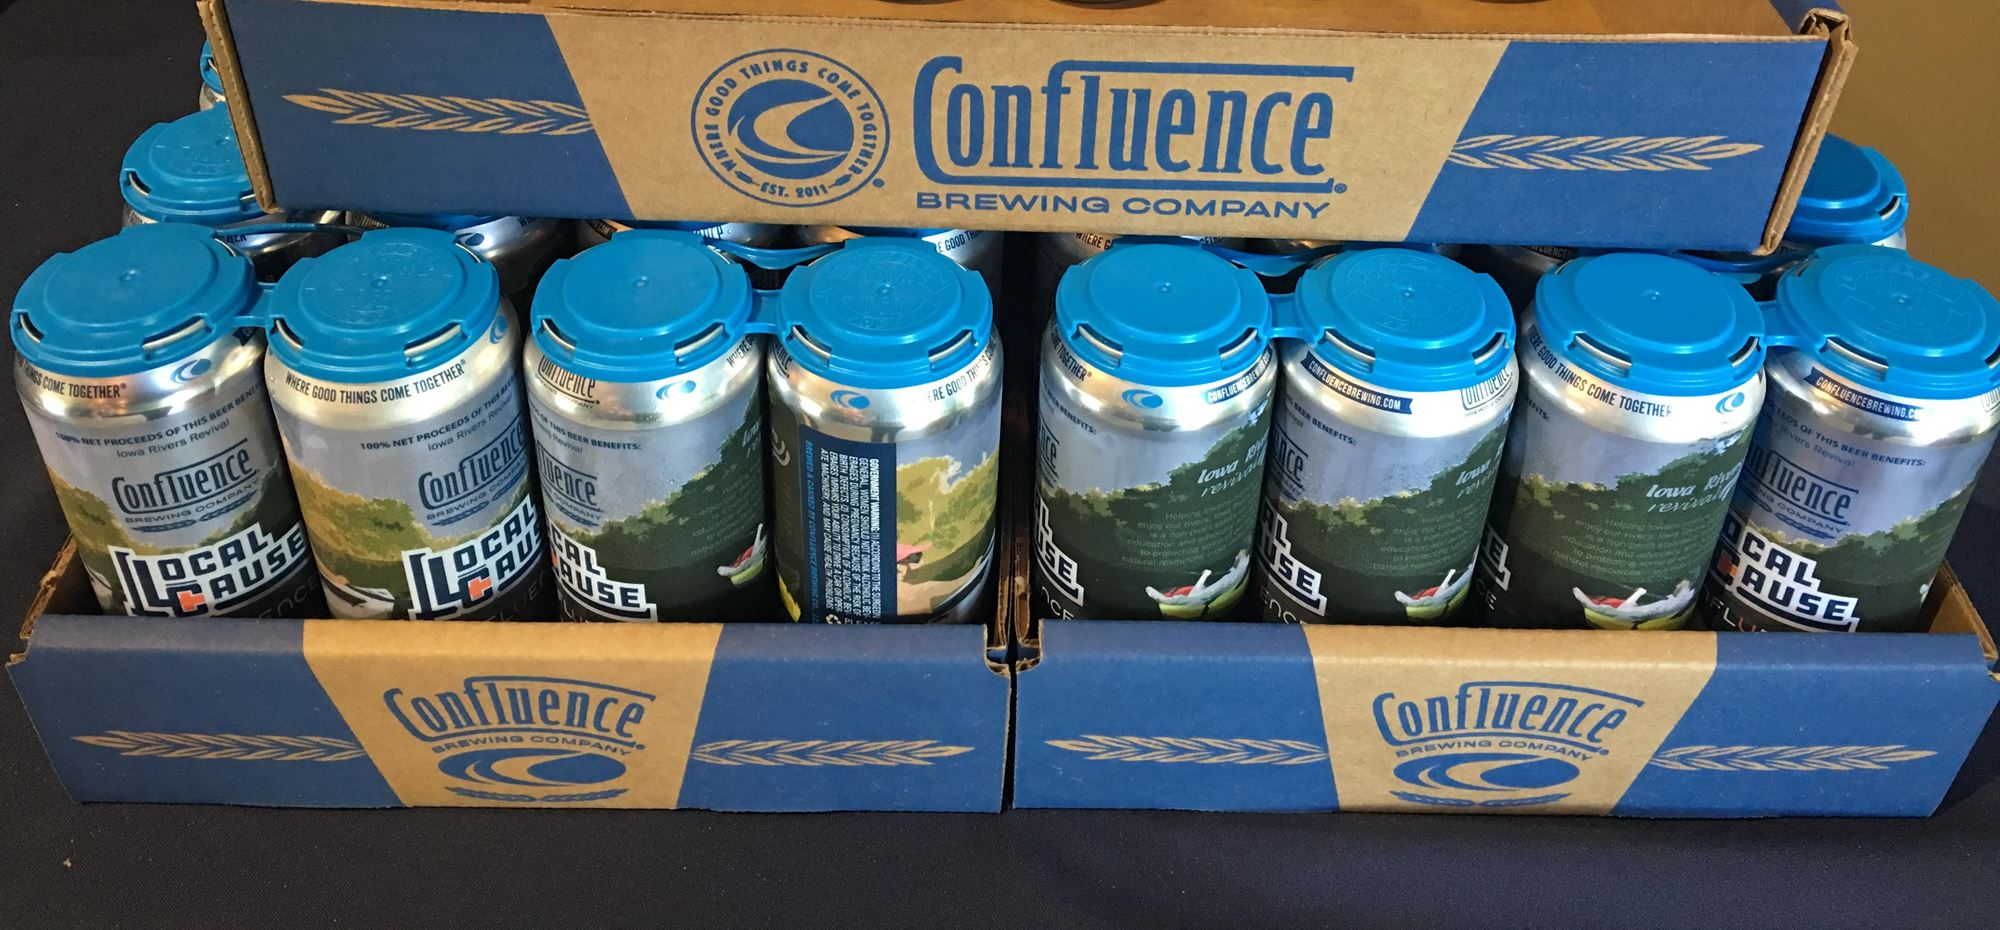 Beer Collaboration - Confluence Brewing Company and Iowa Rivers Revival